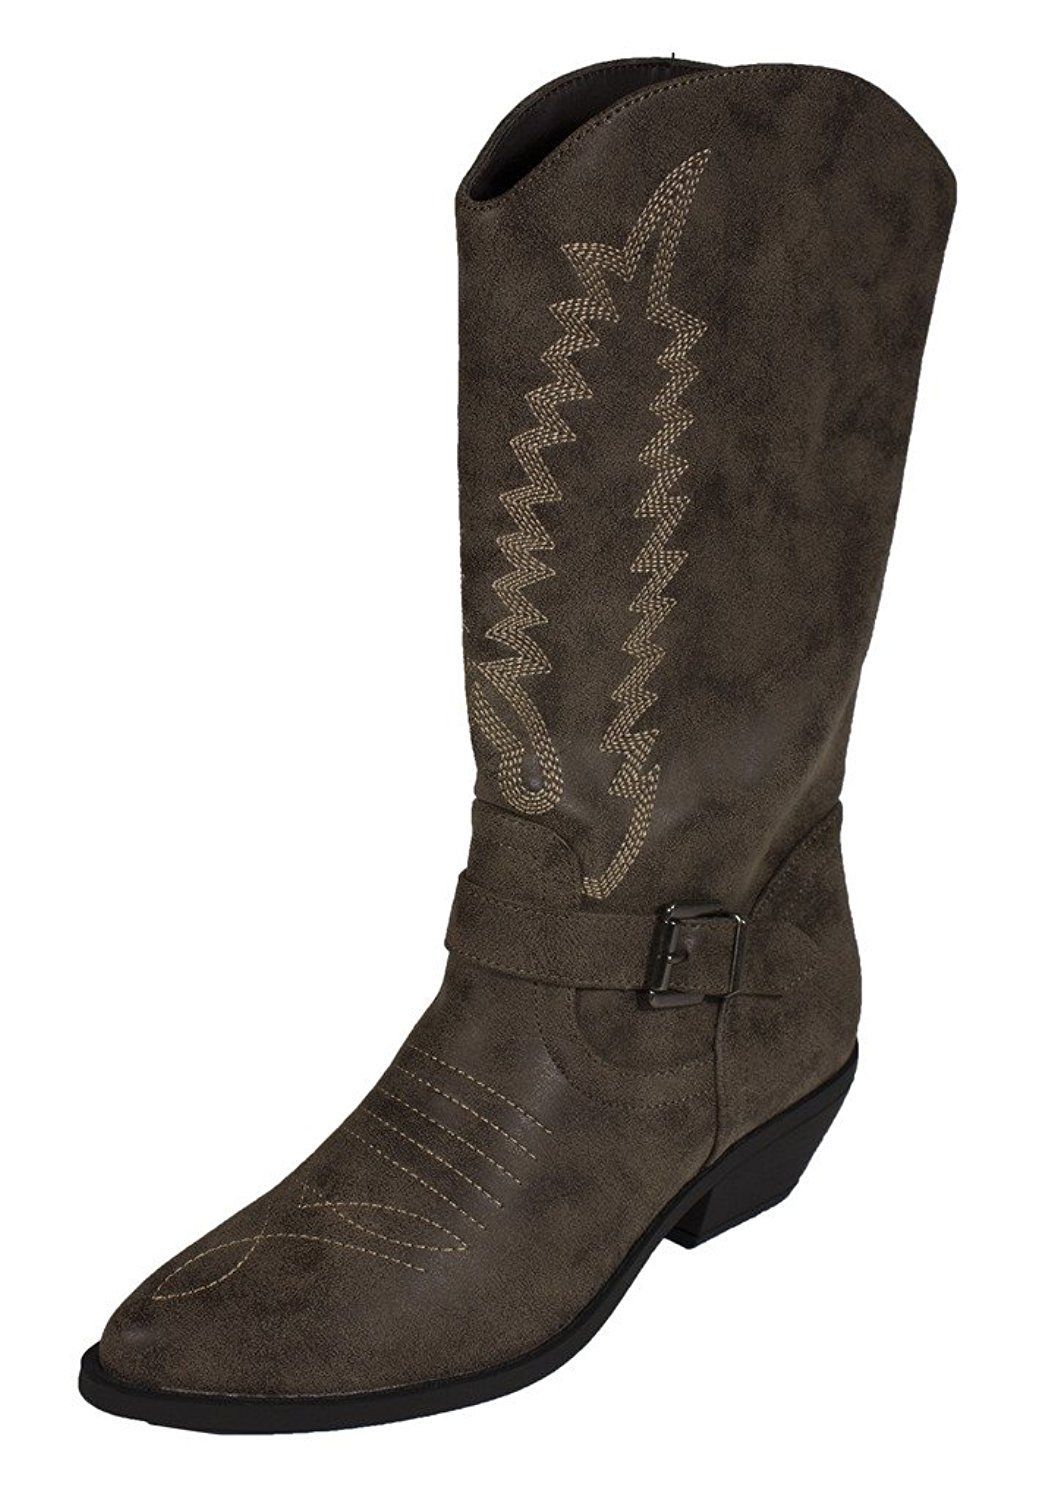 Women's Zoning Mid Calf Western Cowboy Wing Stitched Side Buckle Boots in Camel Leatherette